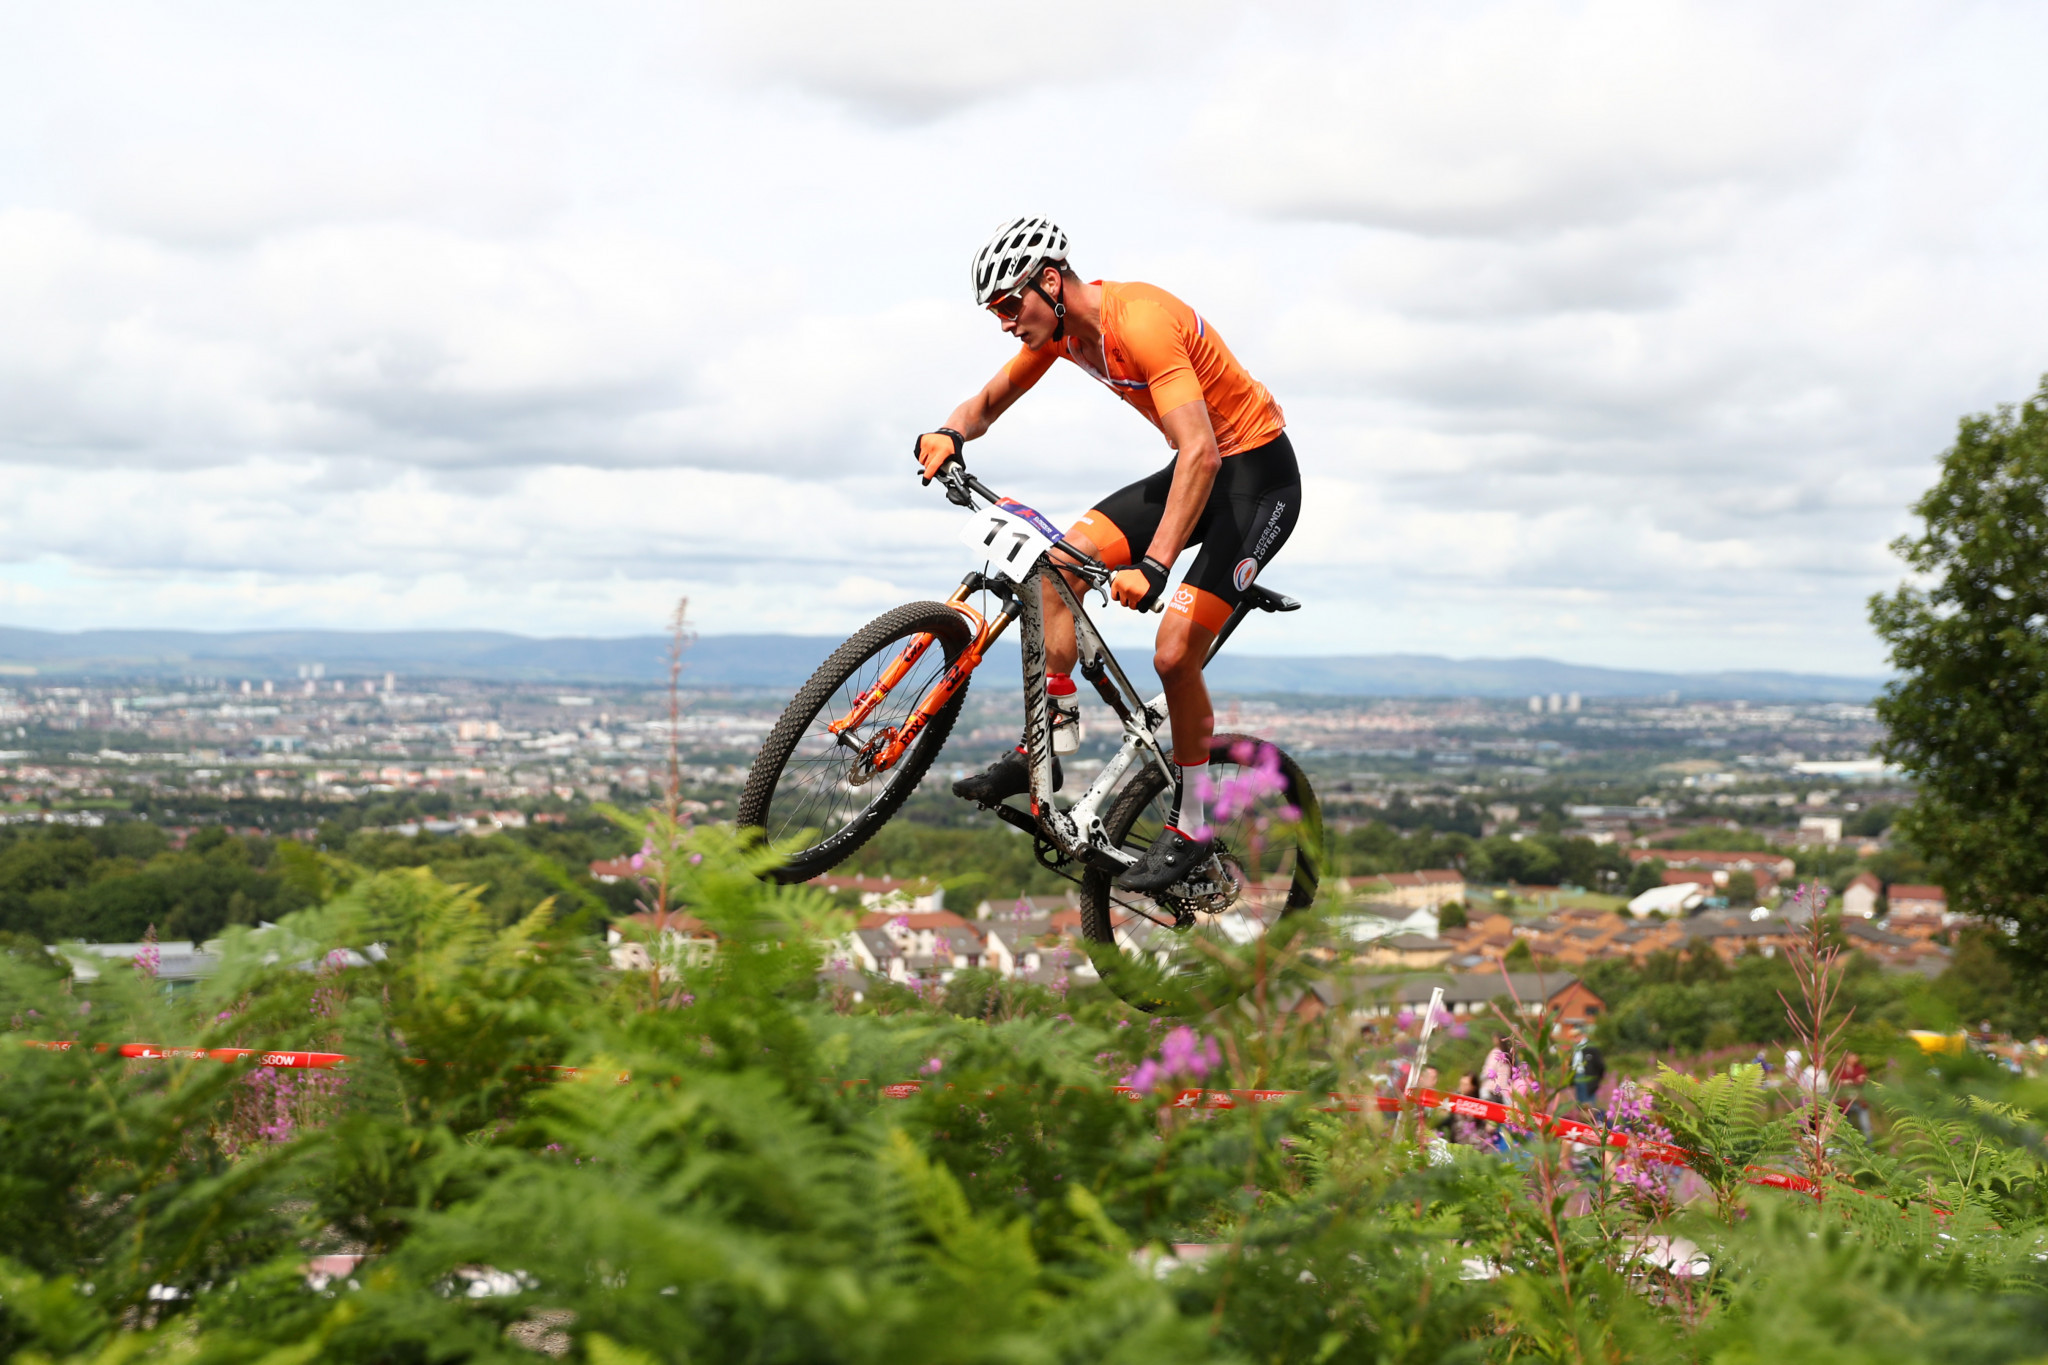 courtney win at uci mountain bike world cup